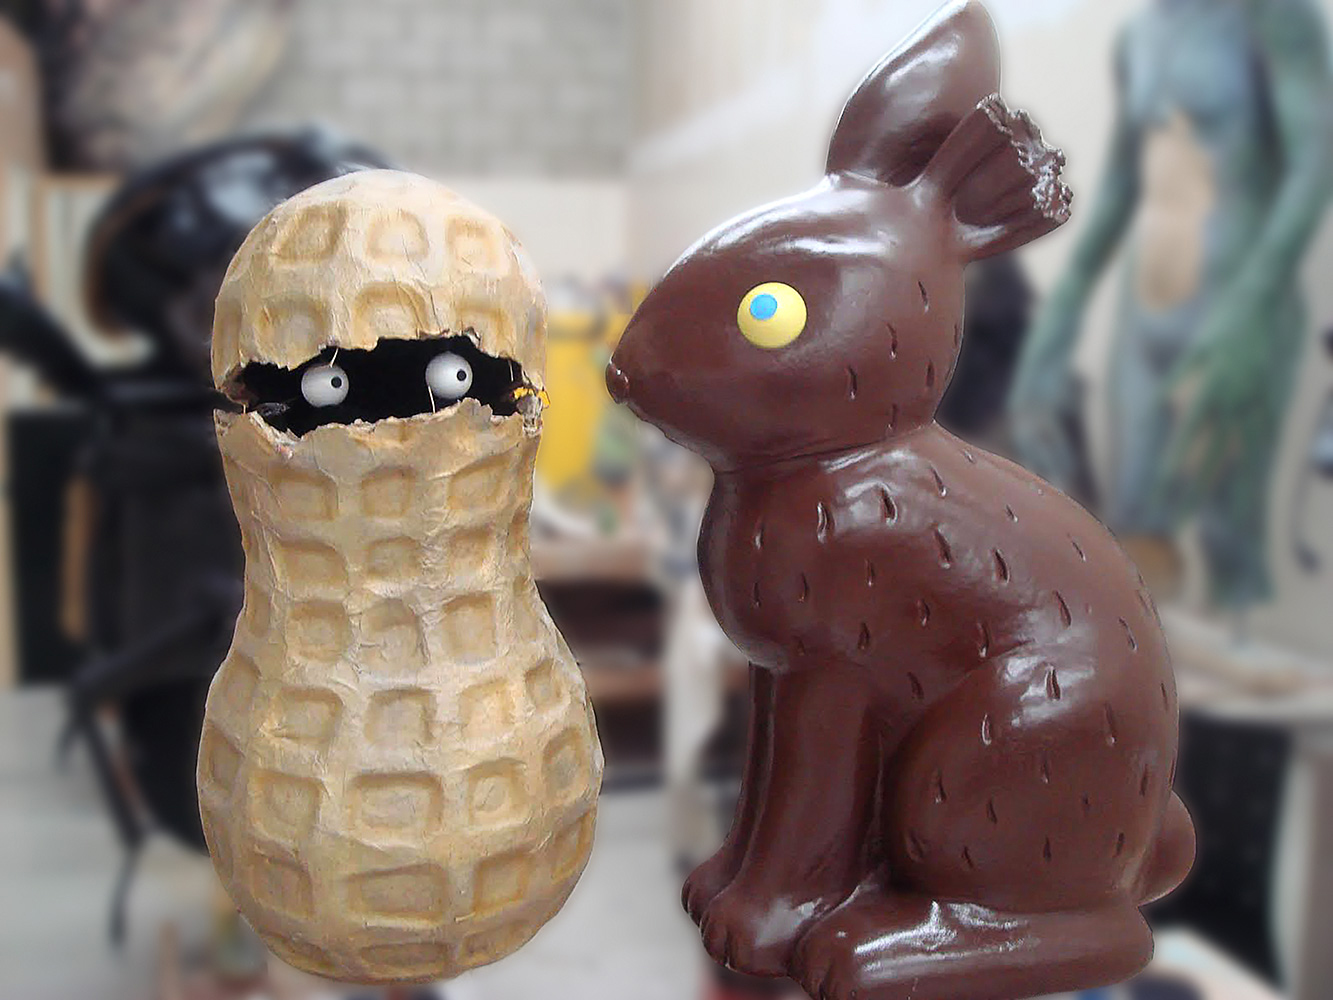 animatronic characters Peanut and Bunny appeared in a reese's candy commercial